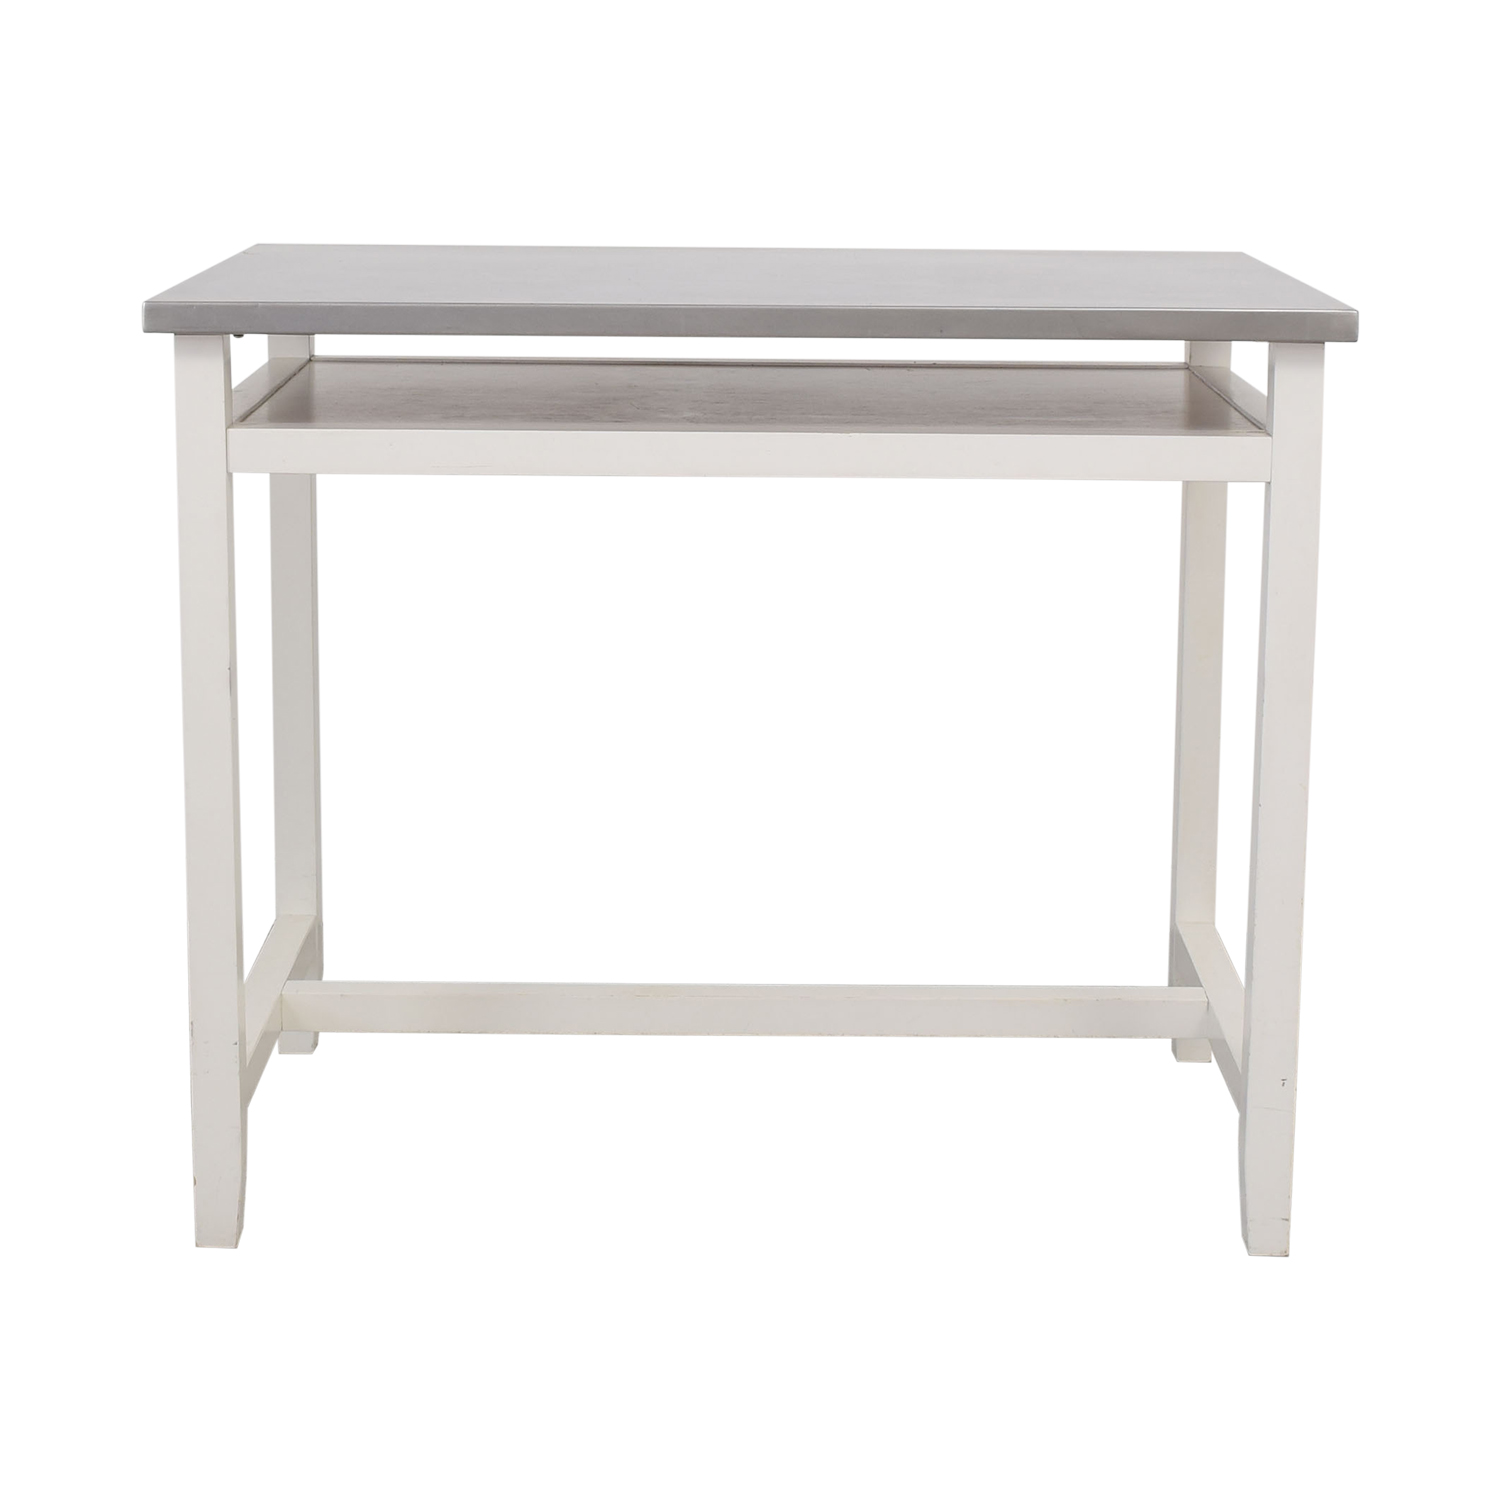 Crate & Barrel Belmont Desk Crate & Barrel